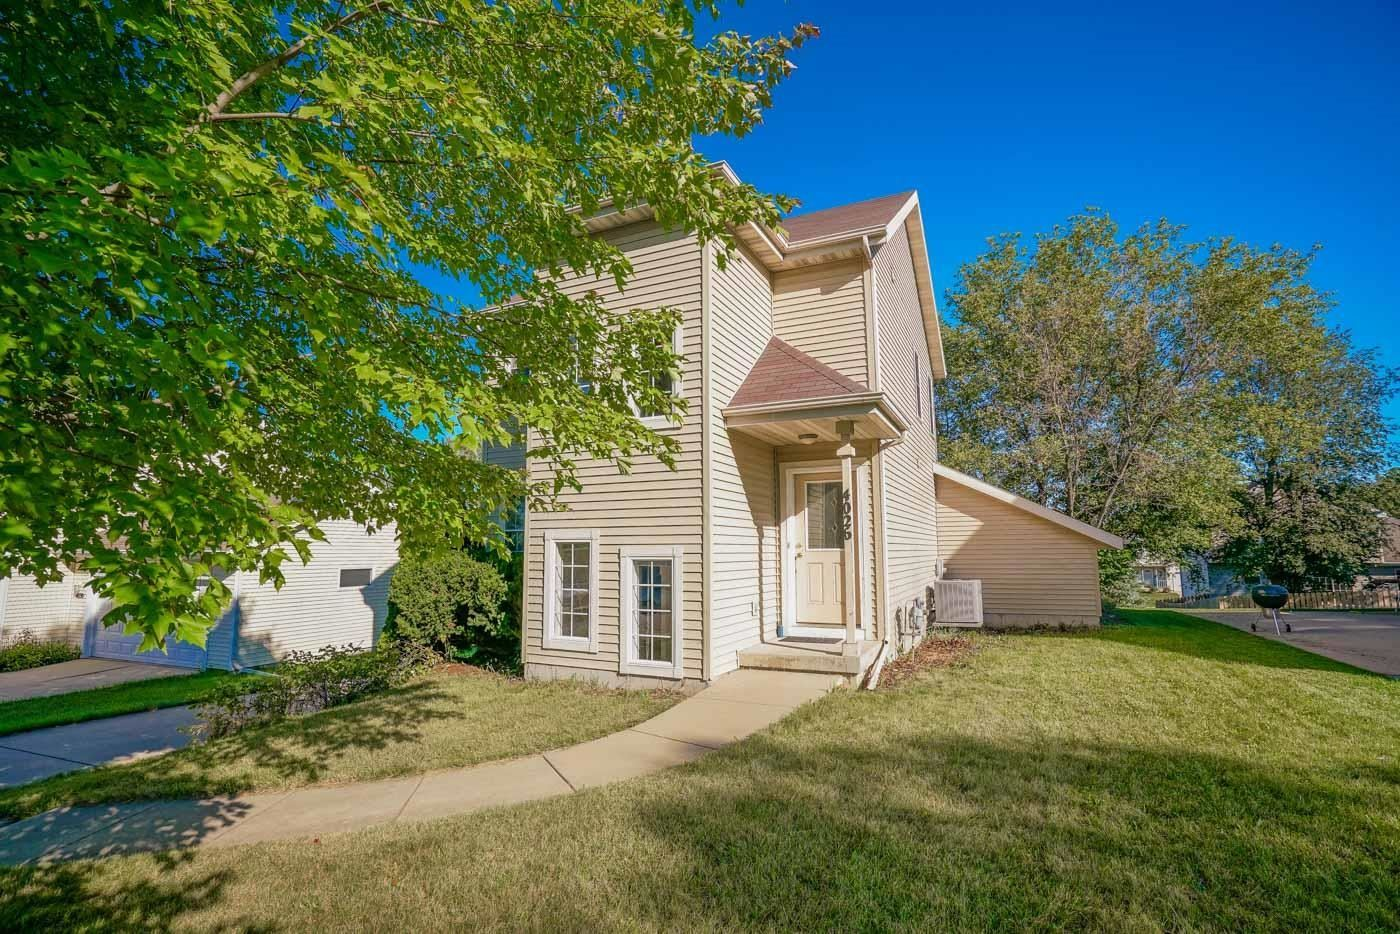 4026 Cosgrove Dr, Madison, WI 53719 - #: 1919638